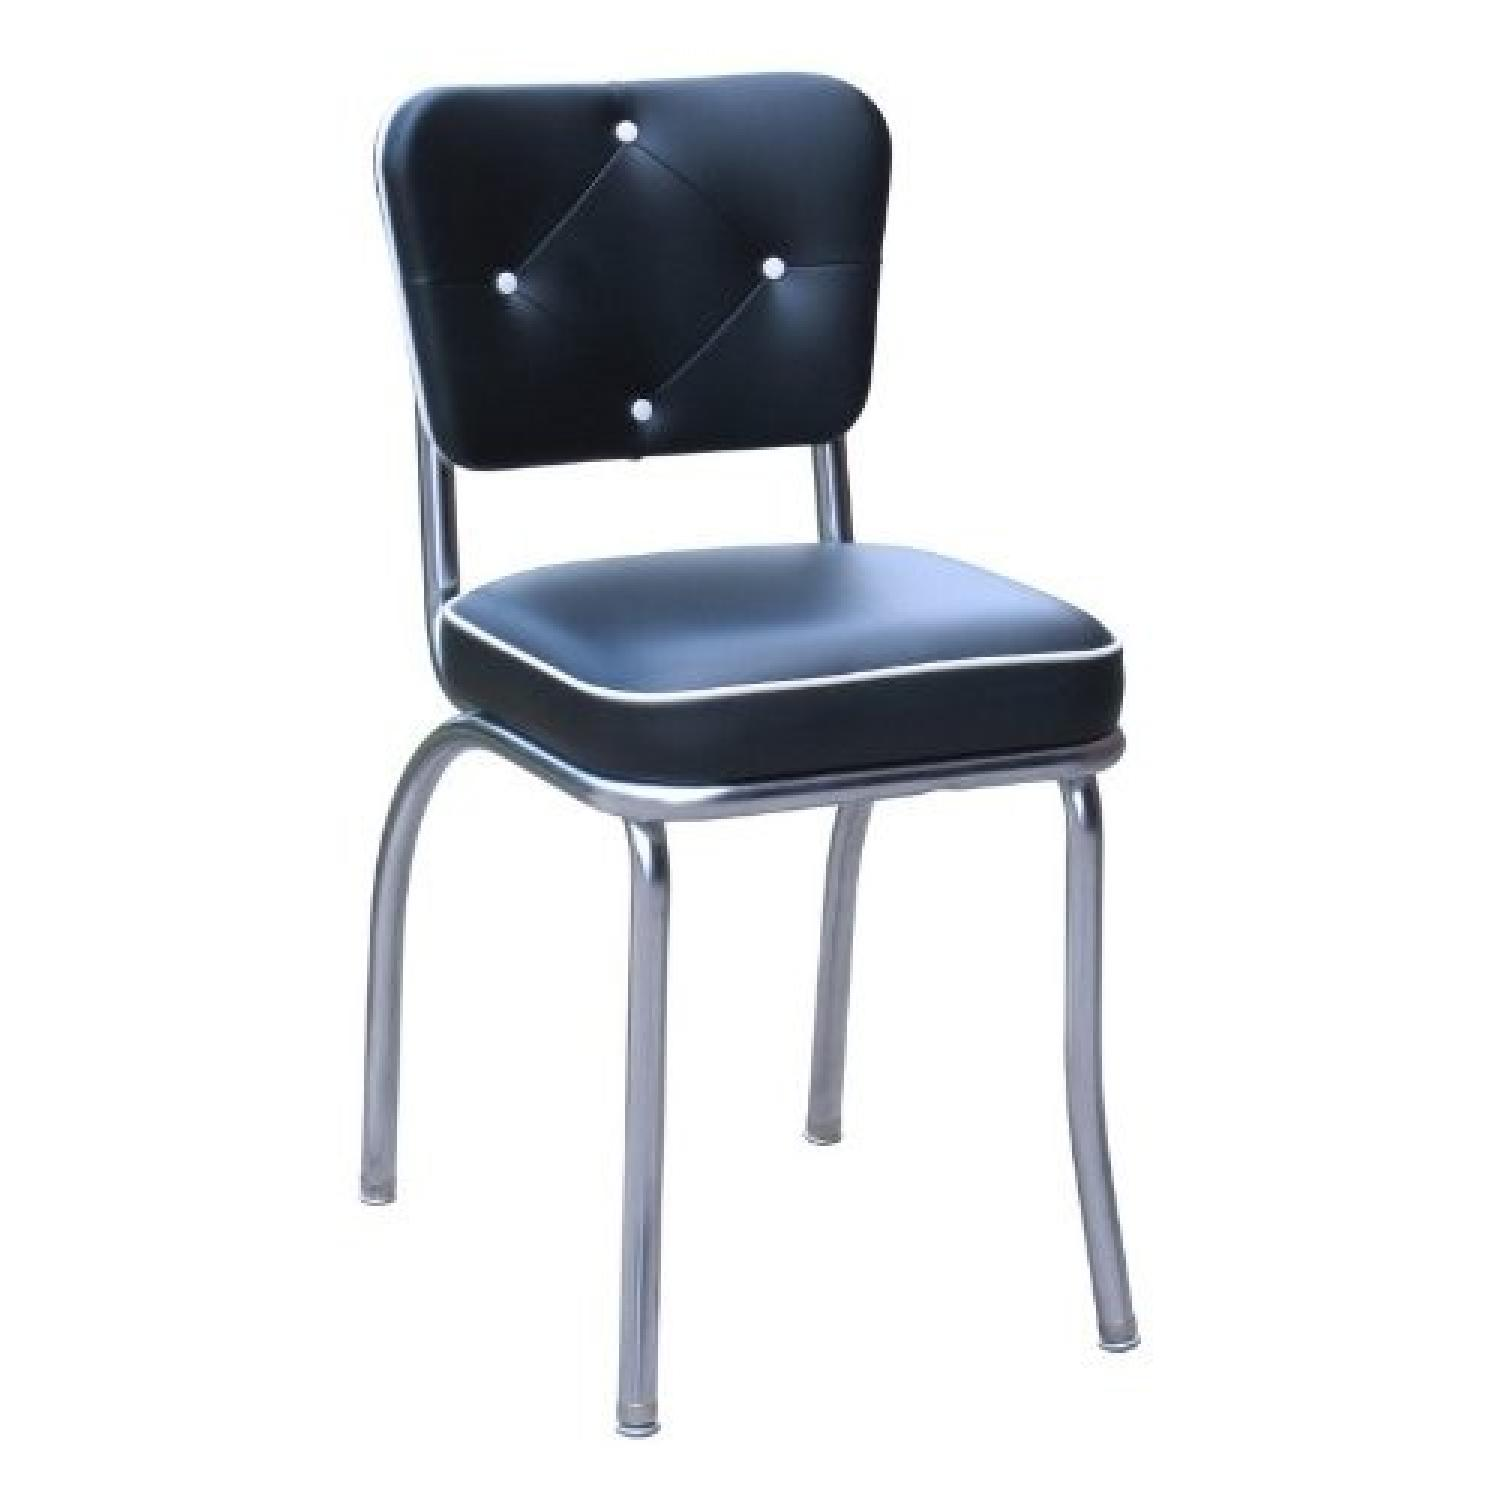 Richardson Seating Corp Lucy Diner Chairs in Black - image-0